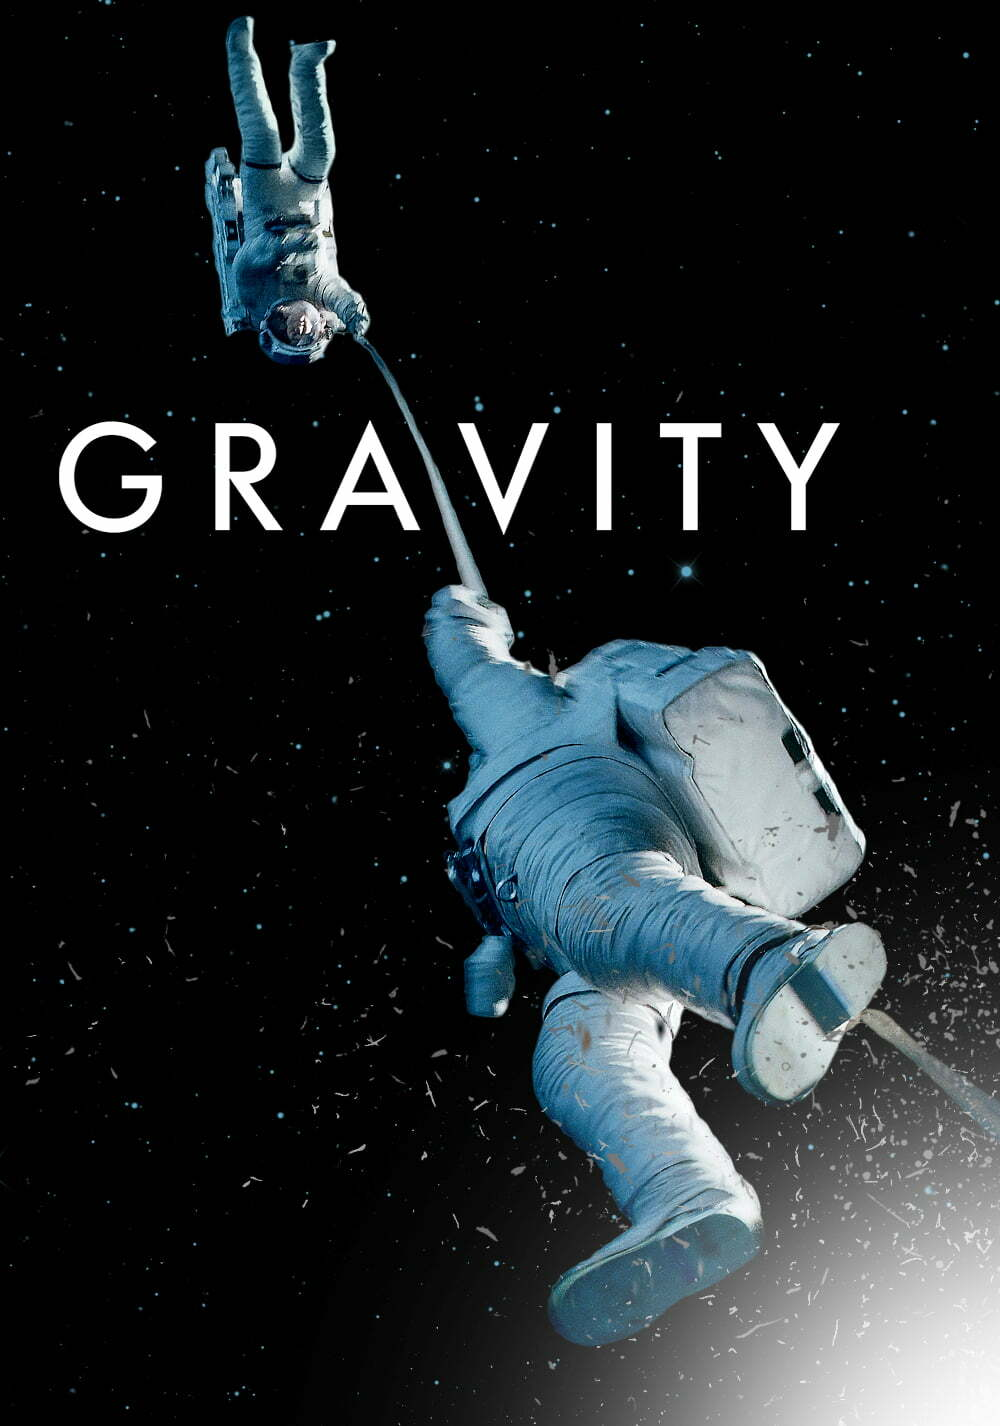 gravity: the love of coming back to mother earth - addis standard